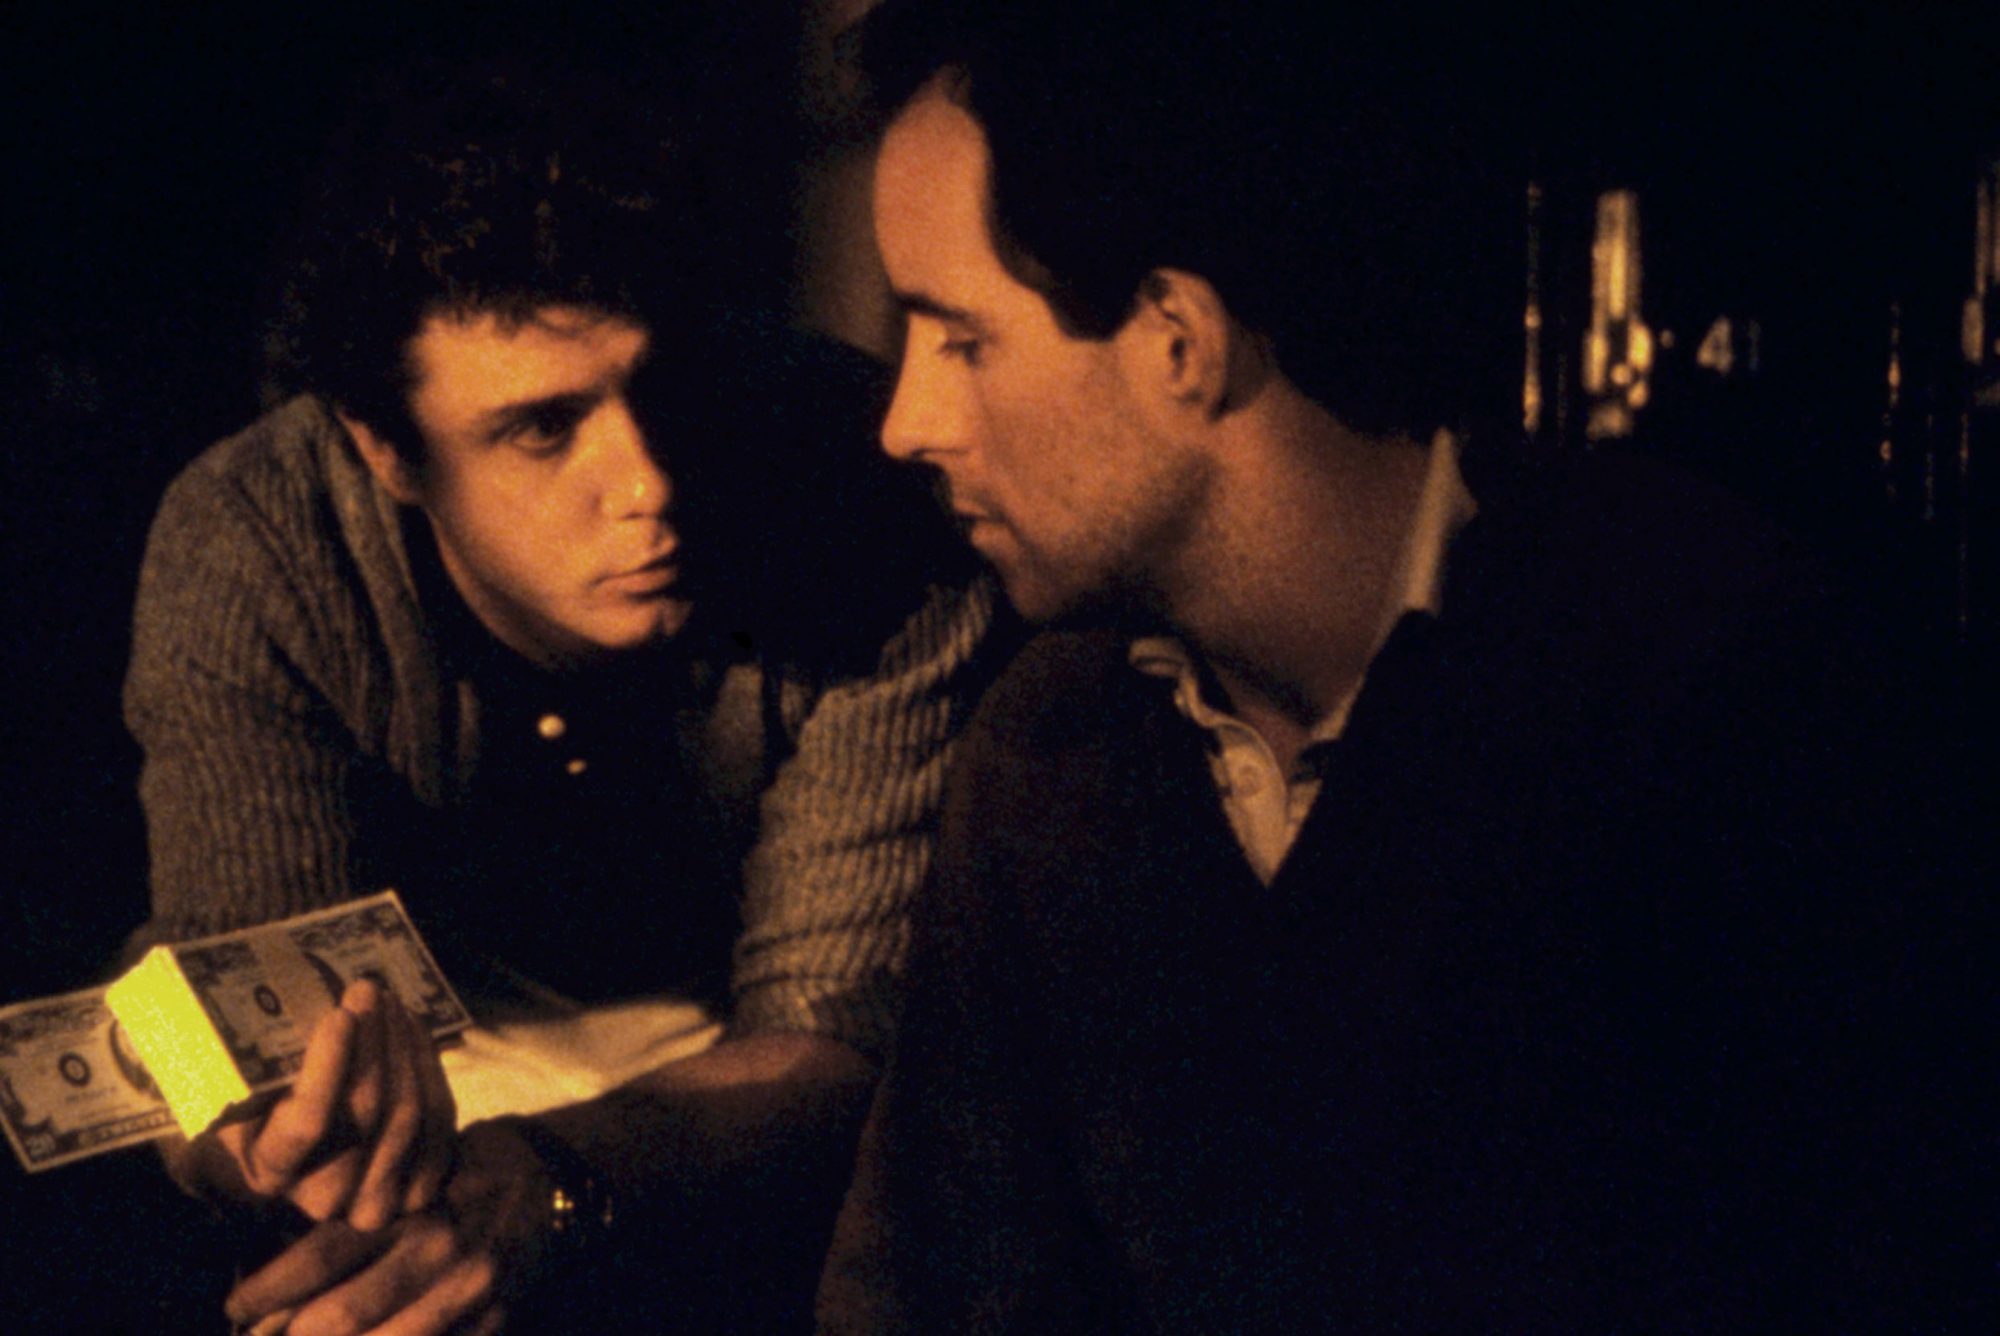 TO LIVE AND DIE IN L.A., William Petersen, John Pankow, 1985